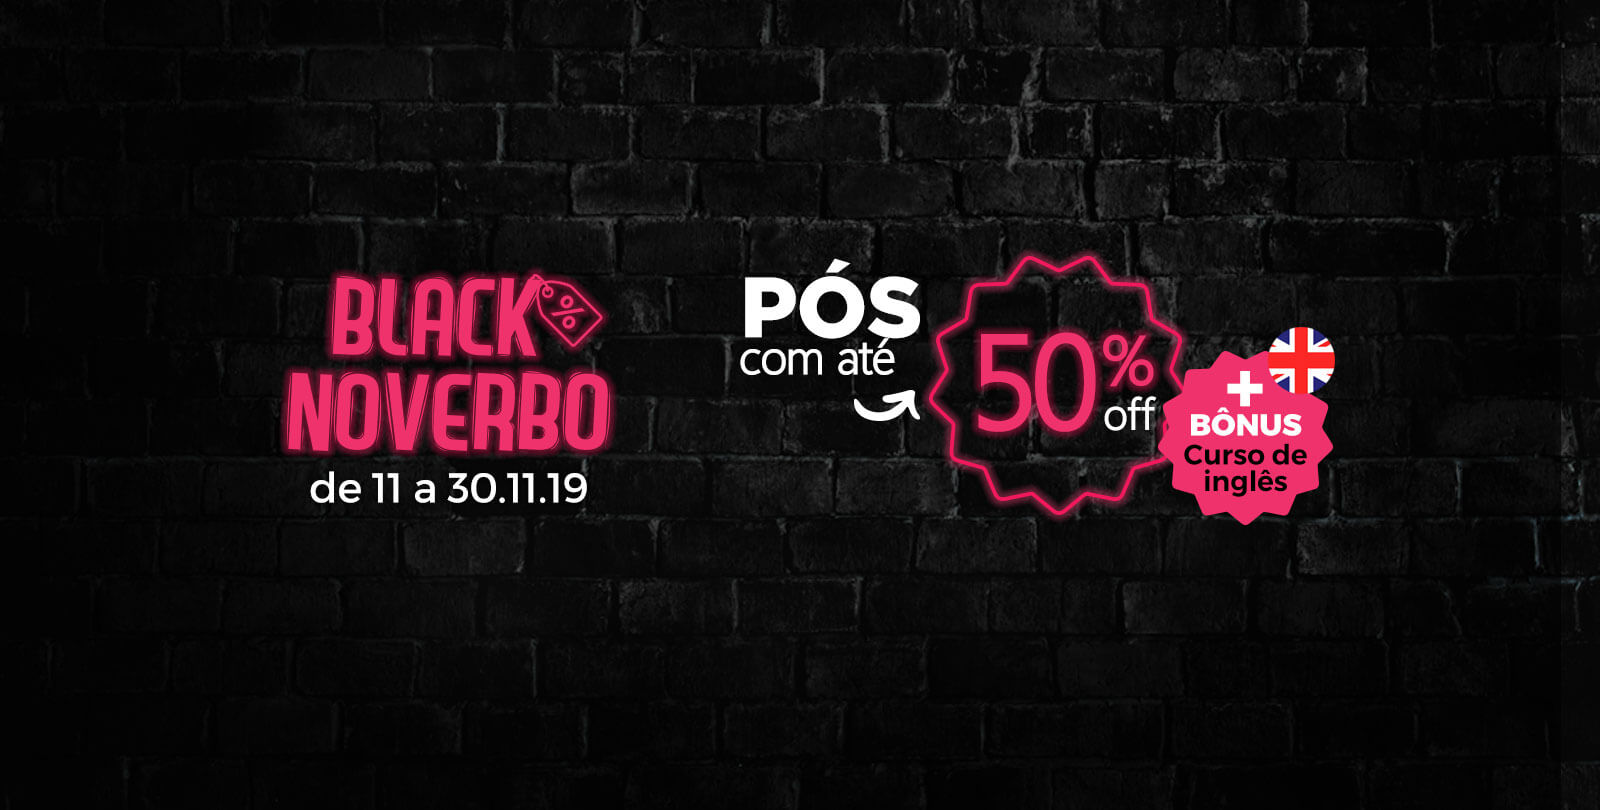 Black NoVerbo - Cursos de Pós